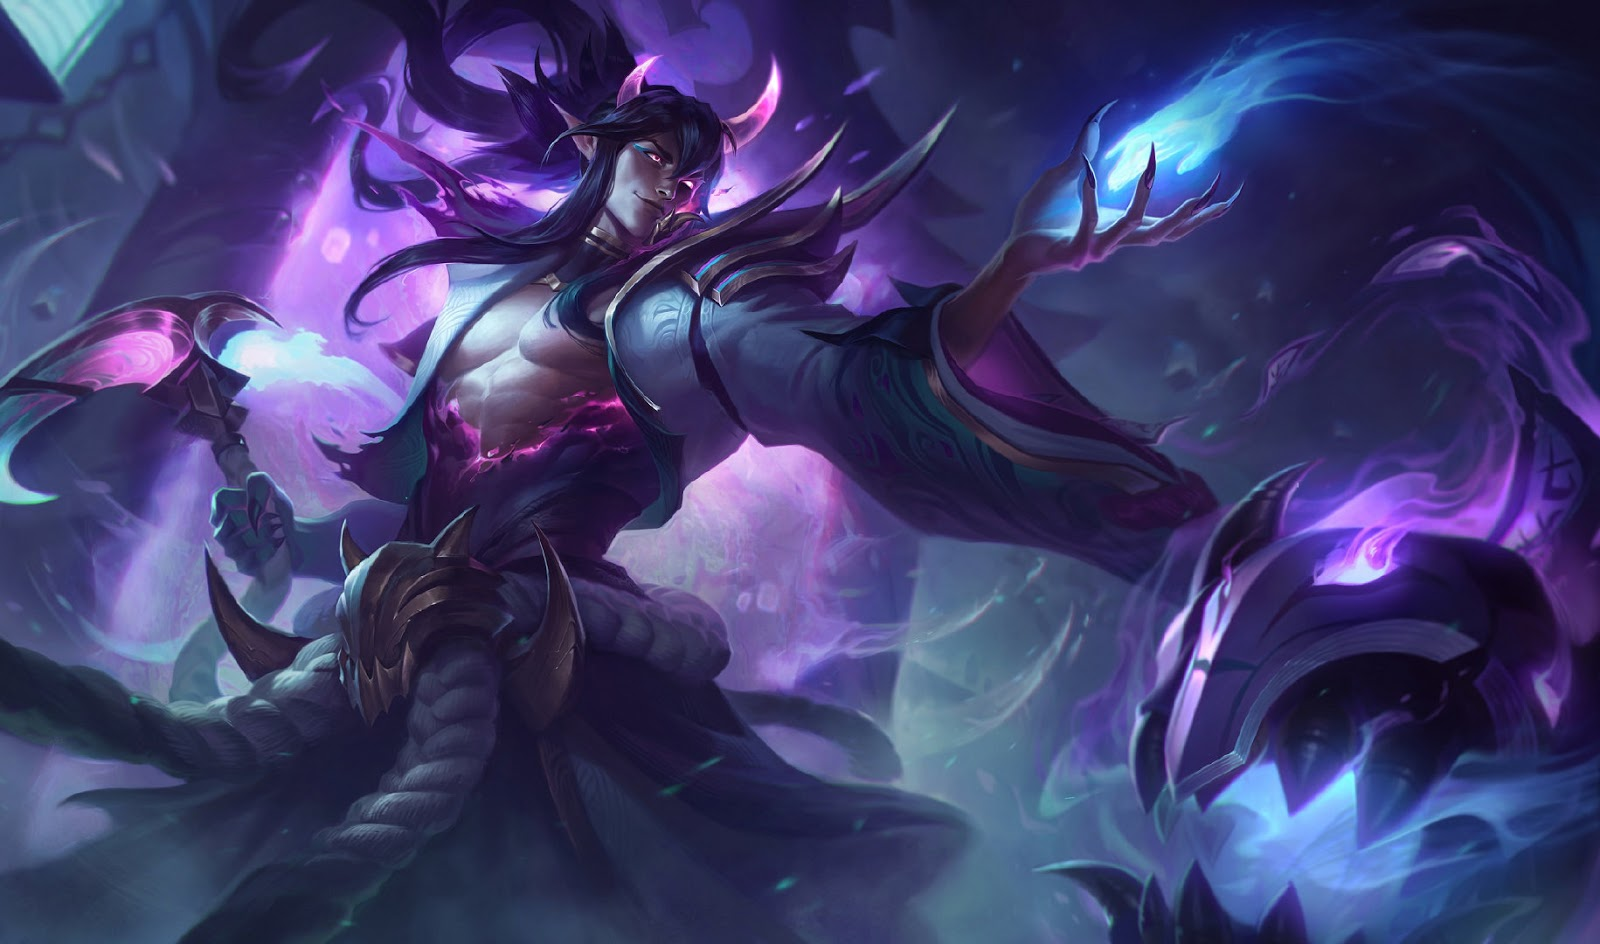 Spirit Blossom Skins Revealed: Thresh and Yasuo are the new Lux 3